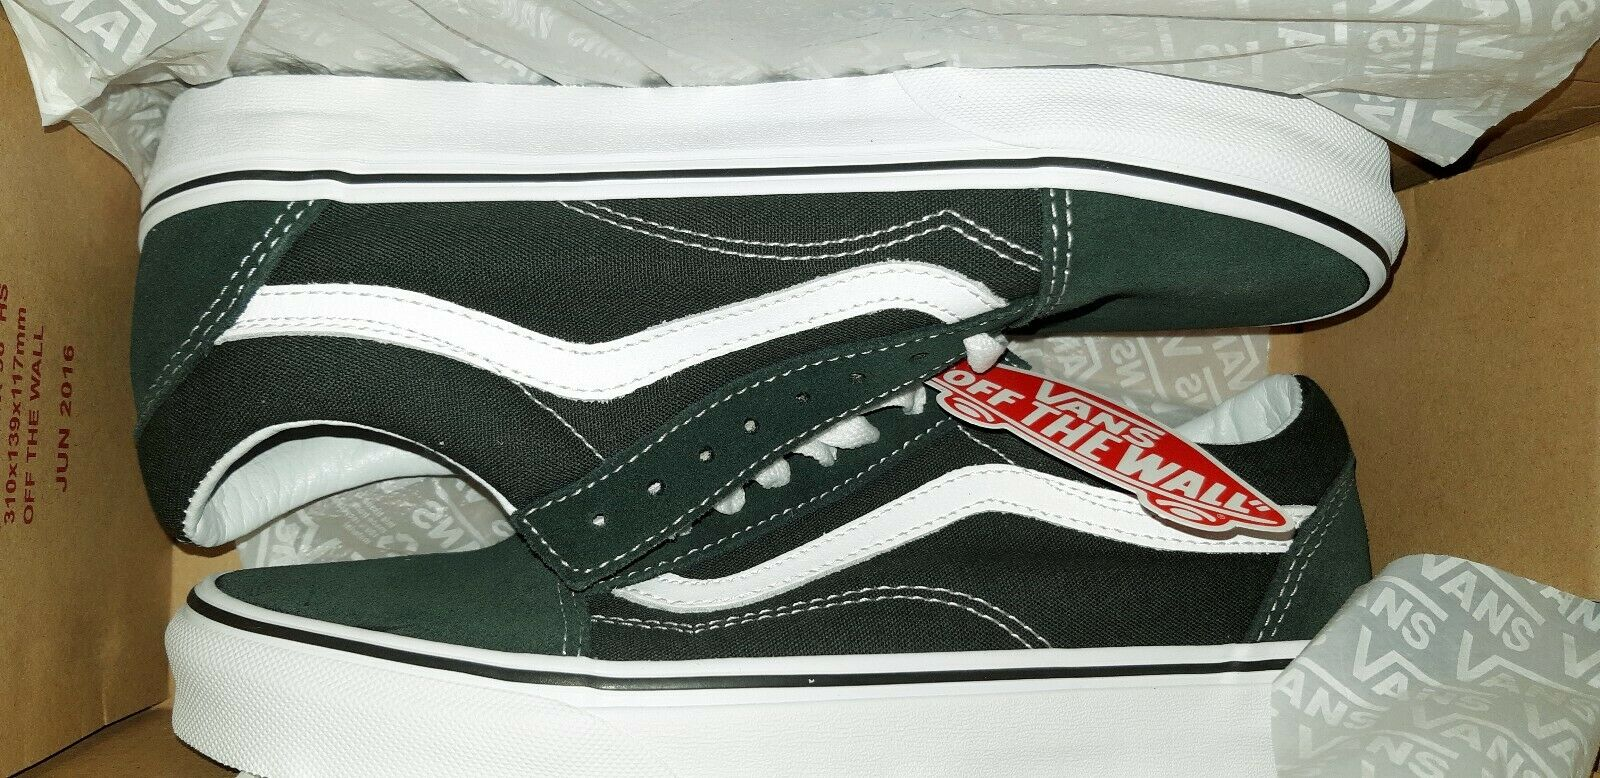 Vans Old Skool Scarab true White VN0A38G1QSU Green Men's Size Size Size 8.5 wmn 10 be8d6f